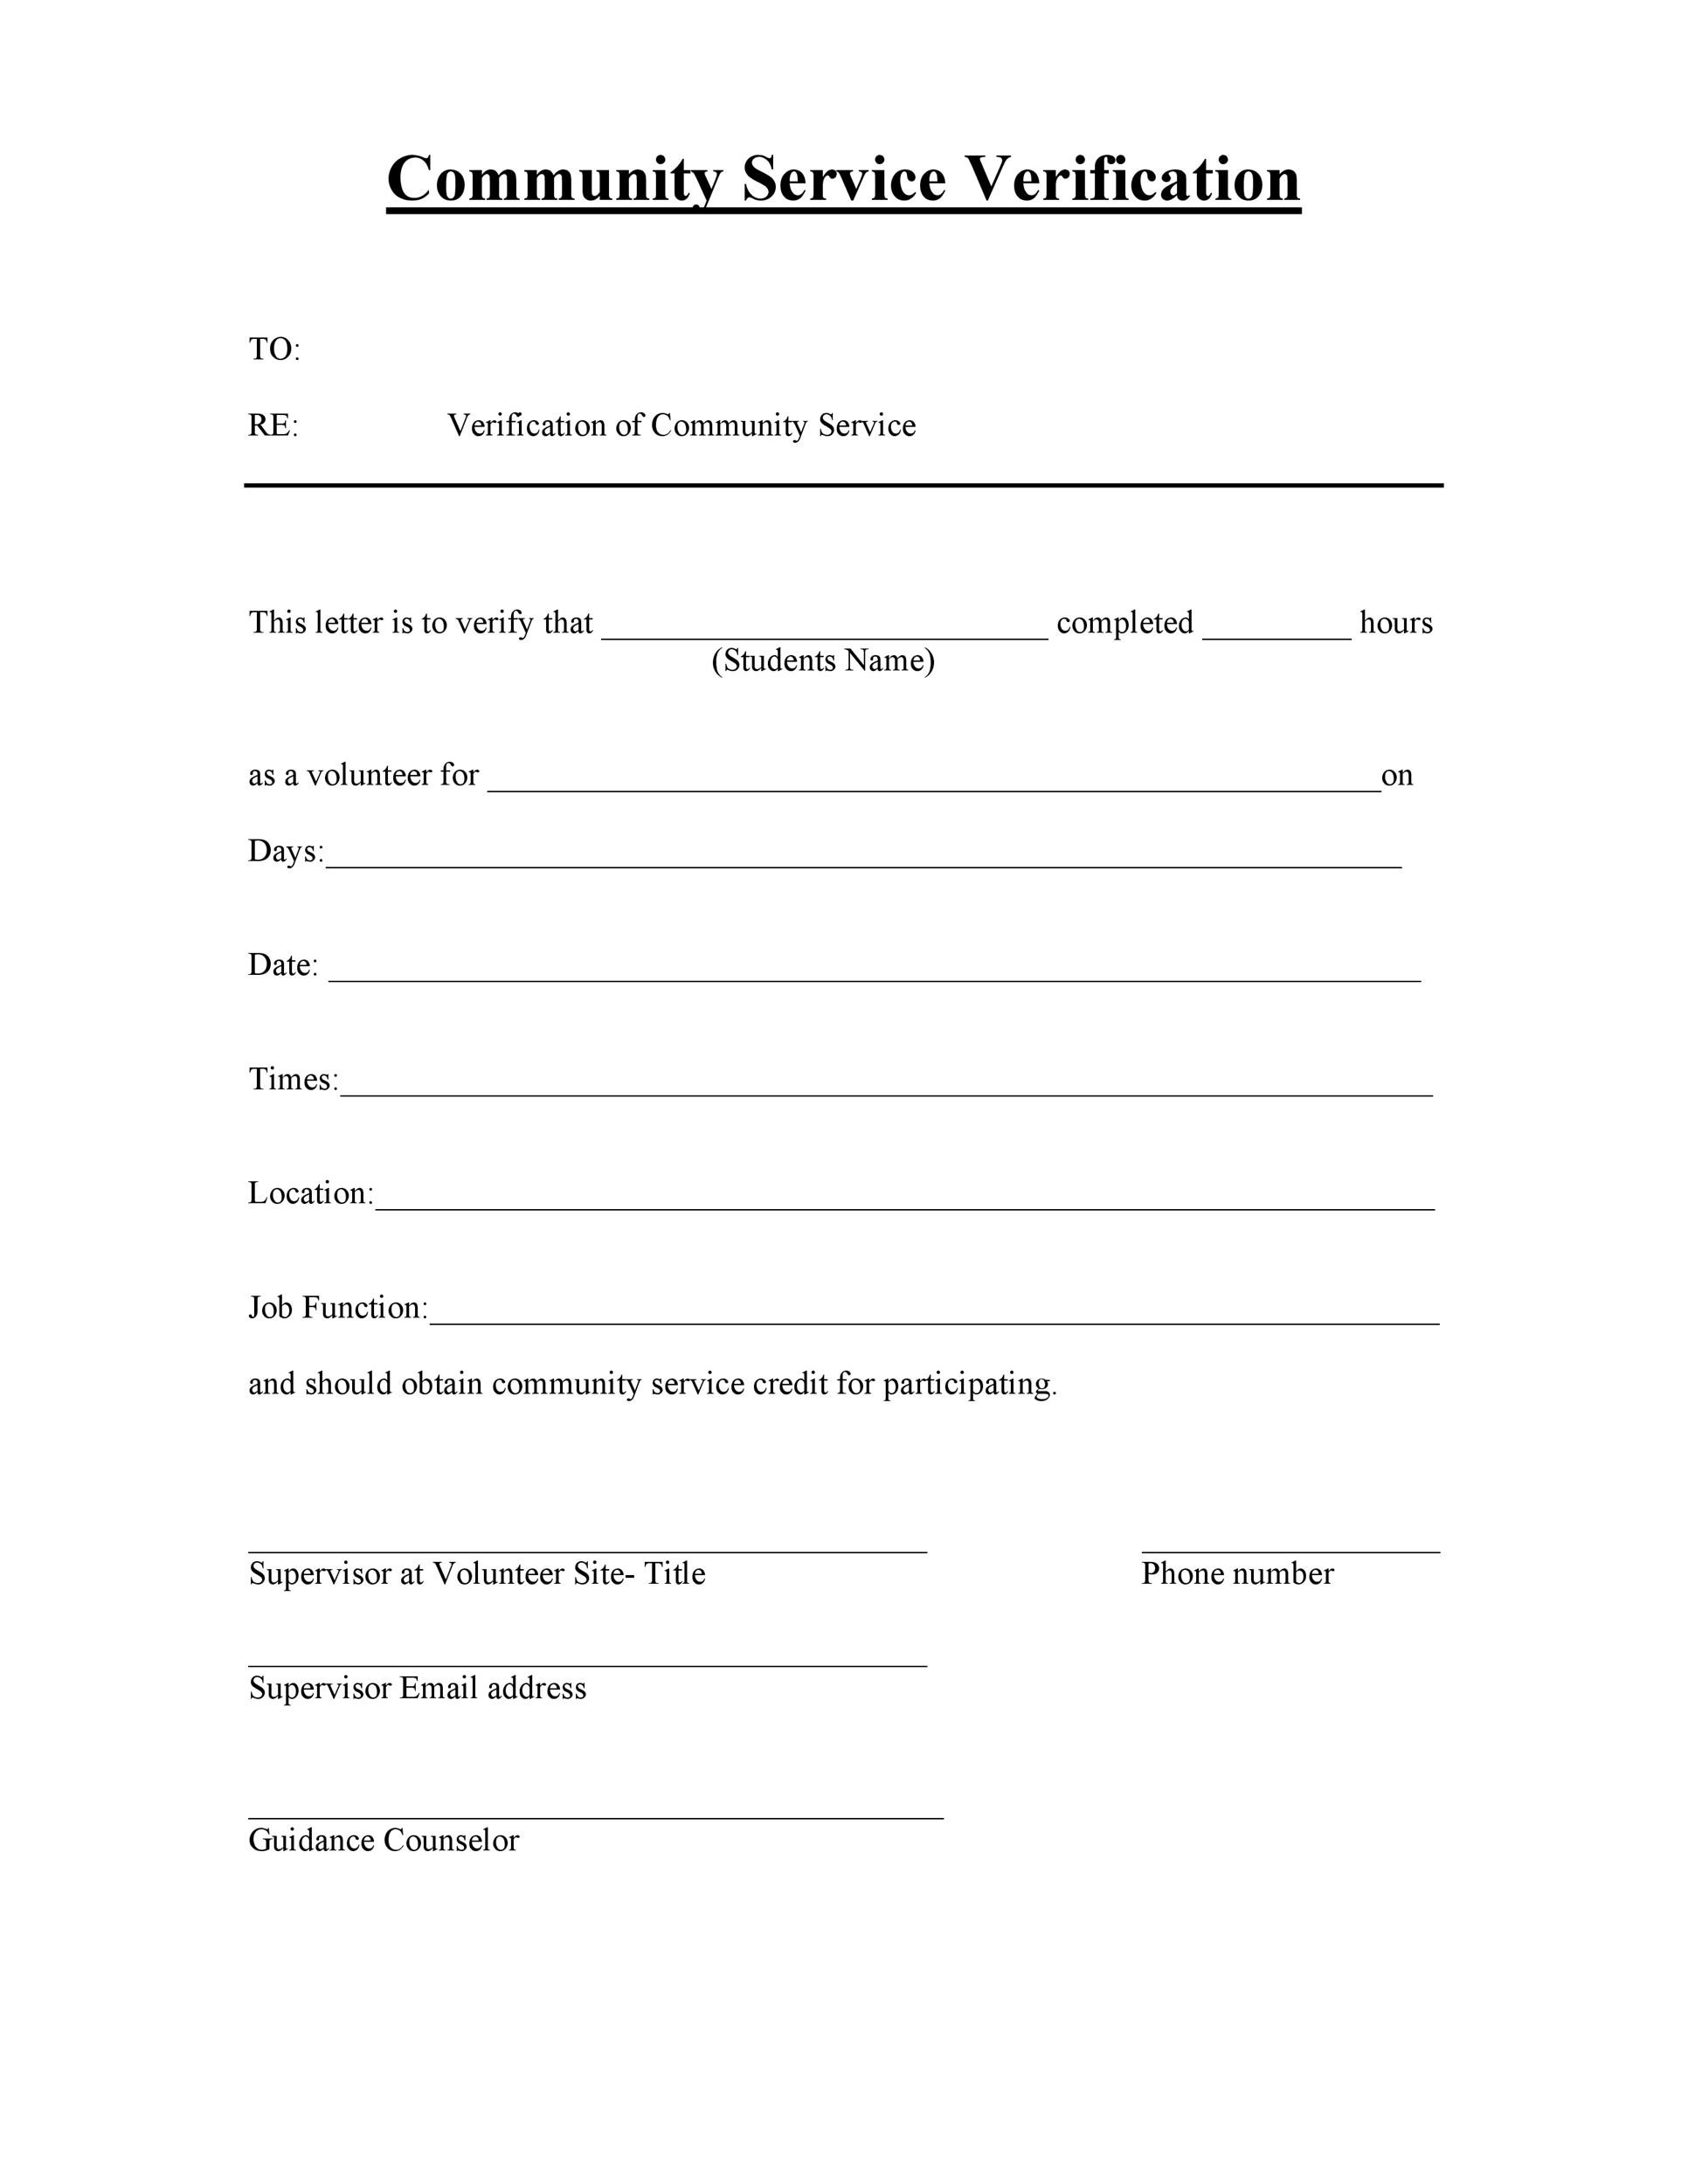 volunteer verification form template Community Service Letter - 40  Templates [Completion, Verification]